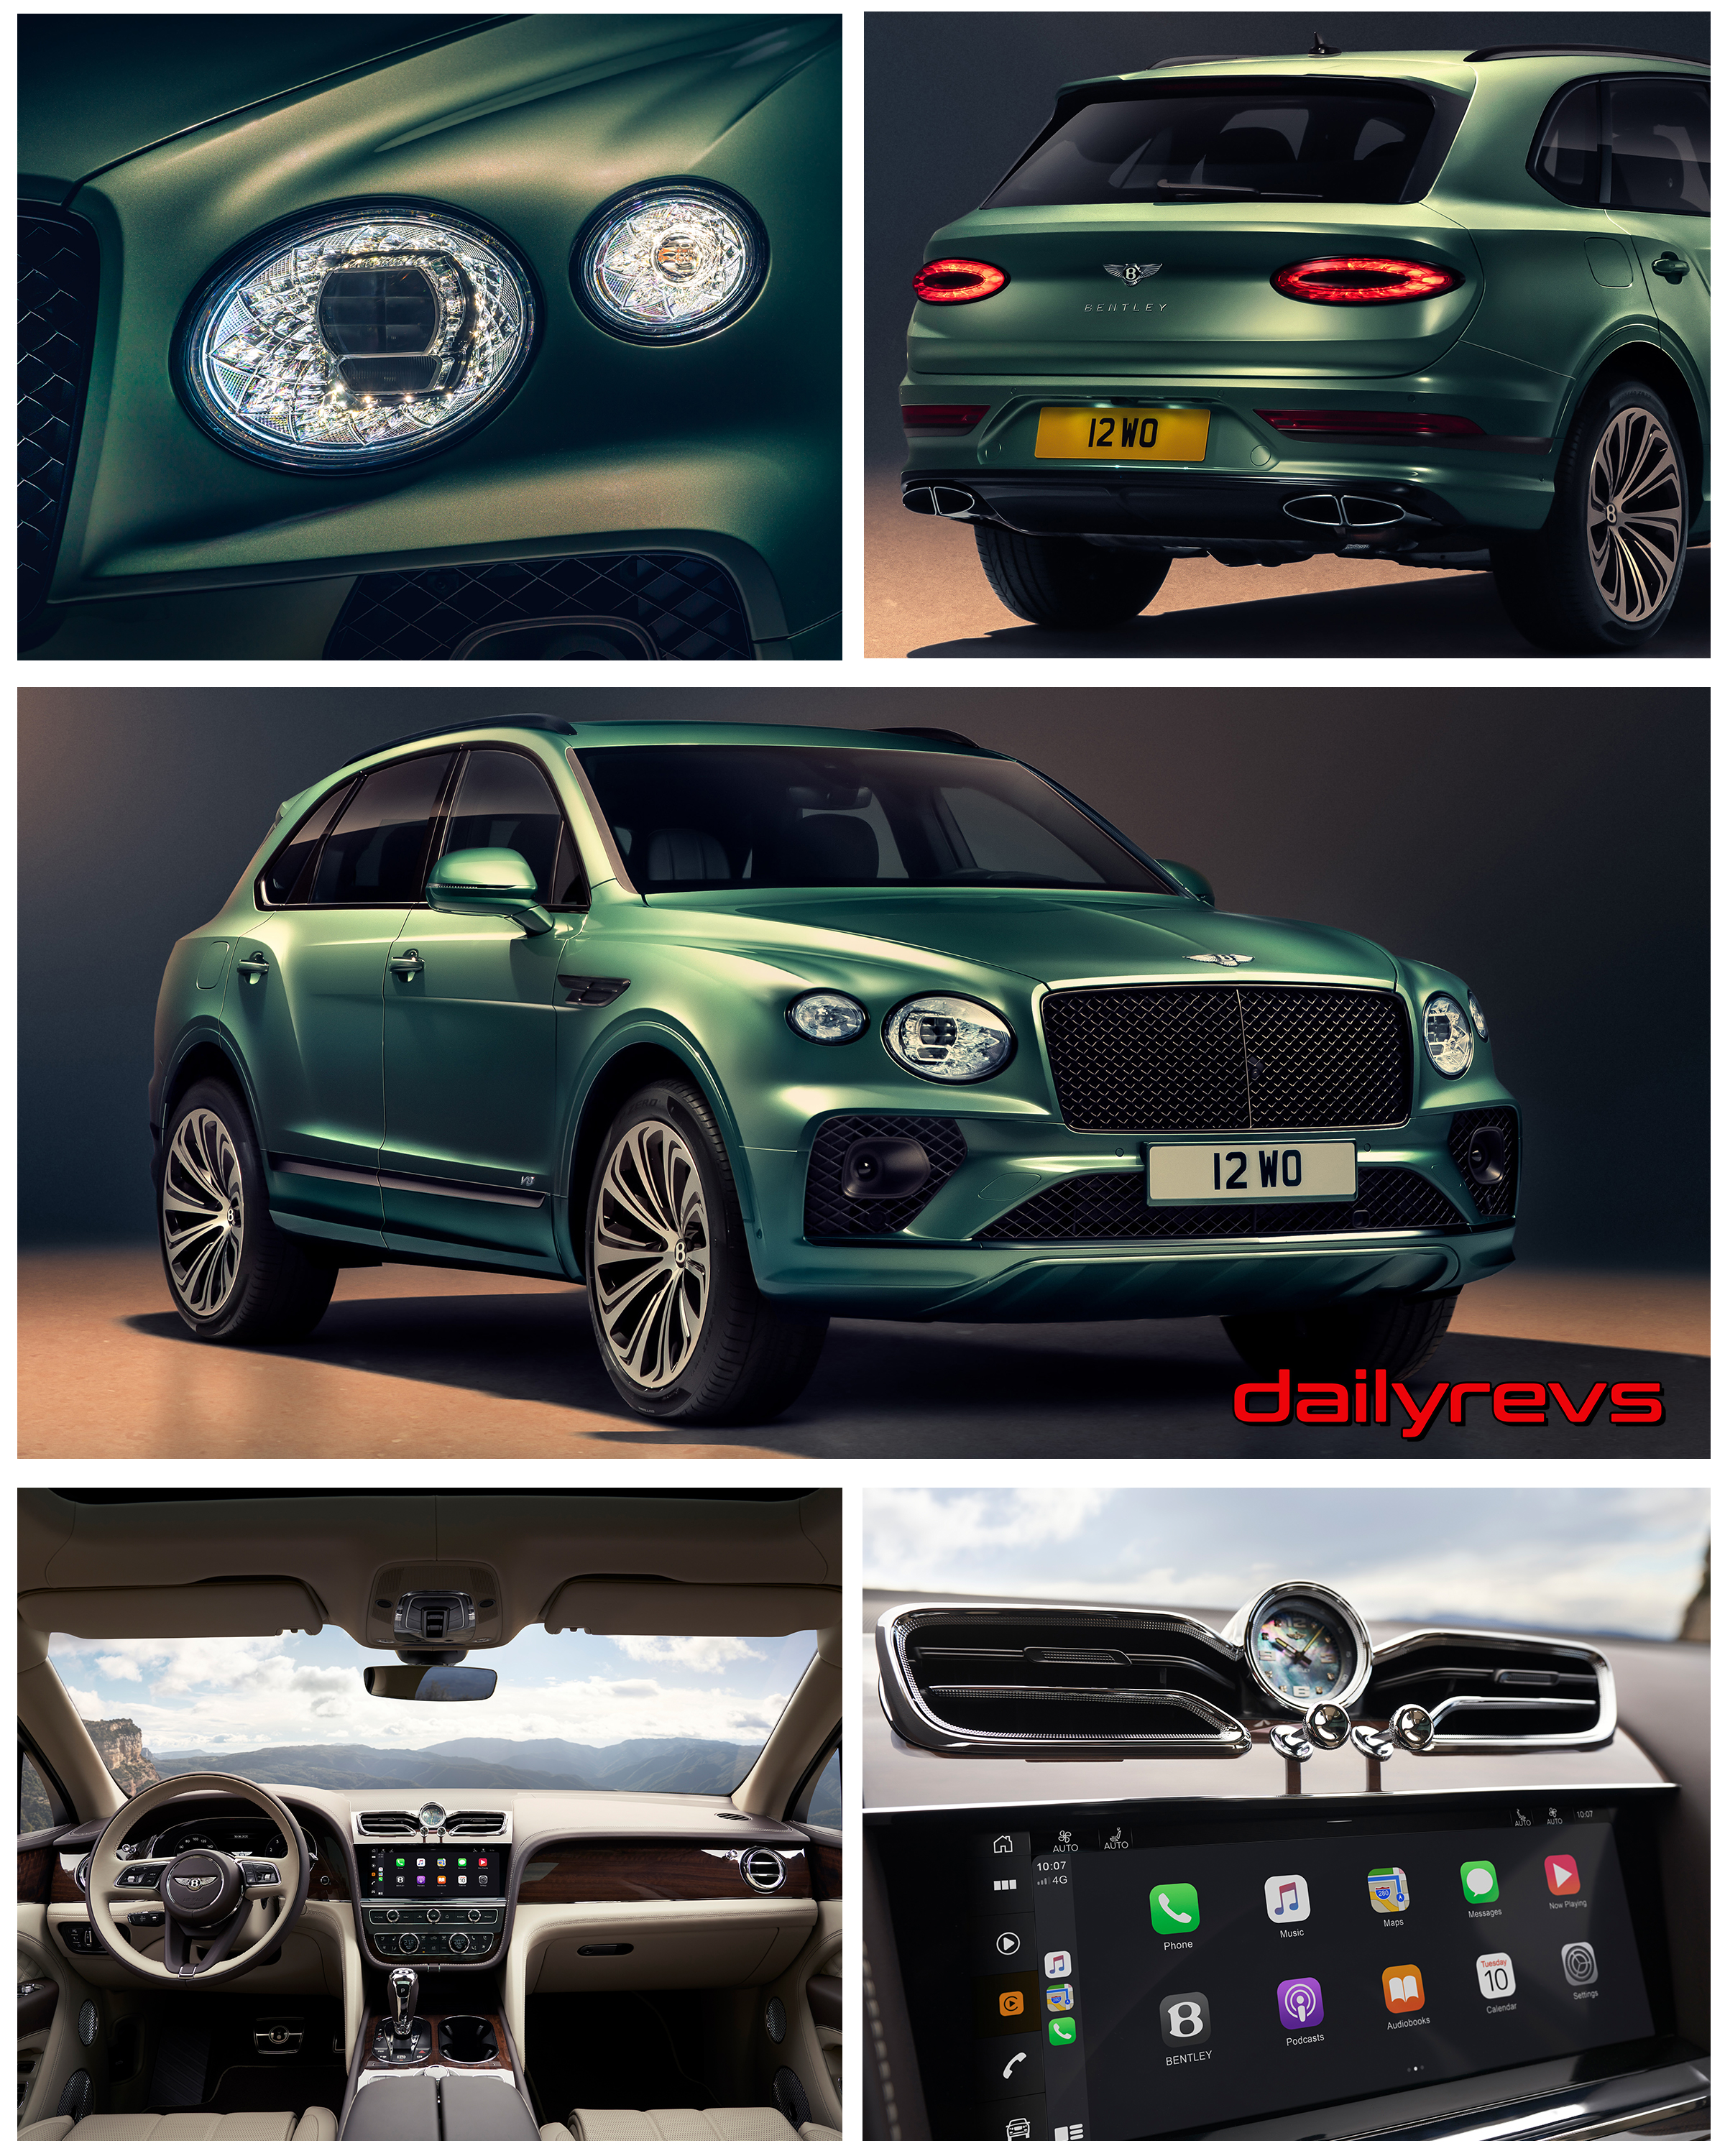 2021 Bentley Bentayga Dailyrevs